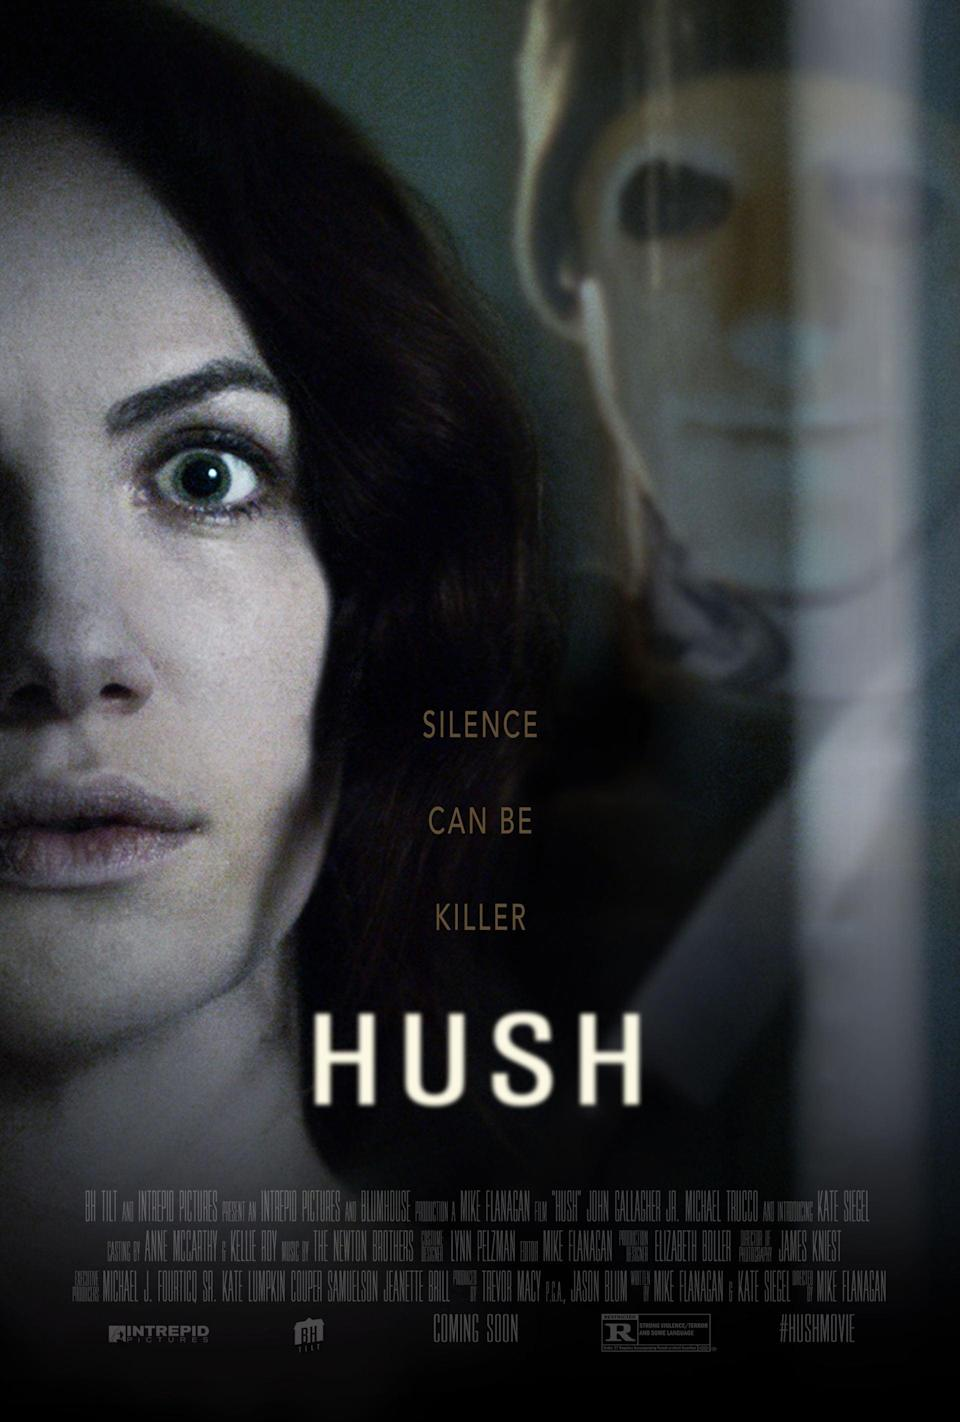 """<p><strong>What you're in for:</strong> Easily one of the best horror movies to come out of Netflix, <strong>Hush</strong> follows a deaf, mute writer over the course of one night as she's hunted by a masked maniac.</p> <p><strong>Notable gore:</strong> Multiple people getting shot by a crossbow, King Joffrey-style.</p> <p><a href=""""https://www.netflix.com/title/80091879"""" class=""""link rapid-noclick-resp"""" rel=""""nofollow noopener"""" target=""""_blank"""" data-ylk=""""slk:Watch Hush on Netflix."""">Watch <strong>Hush</strong> on Netflix.</a></p>"""